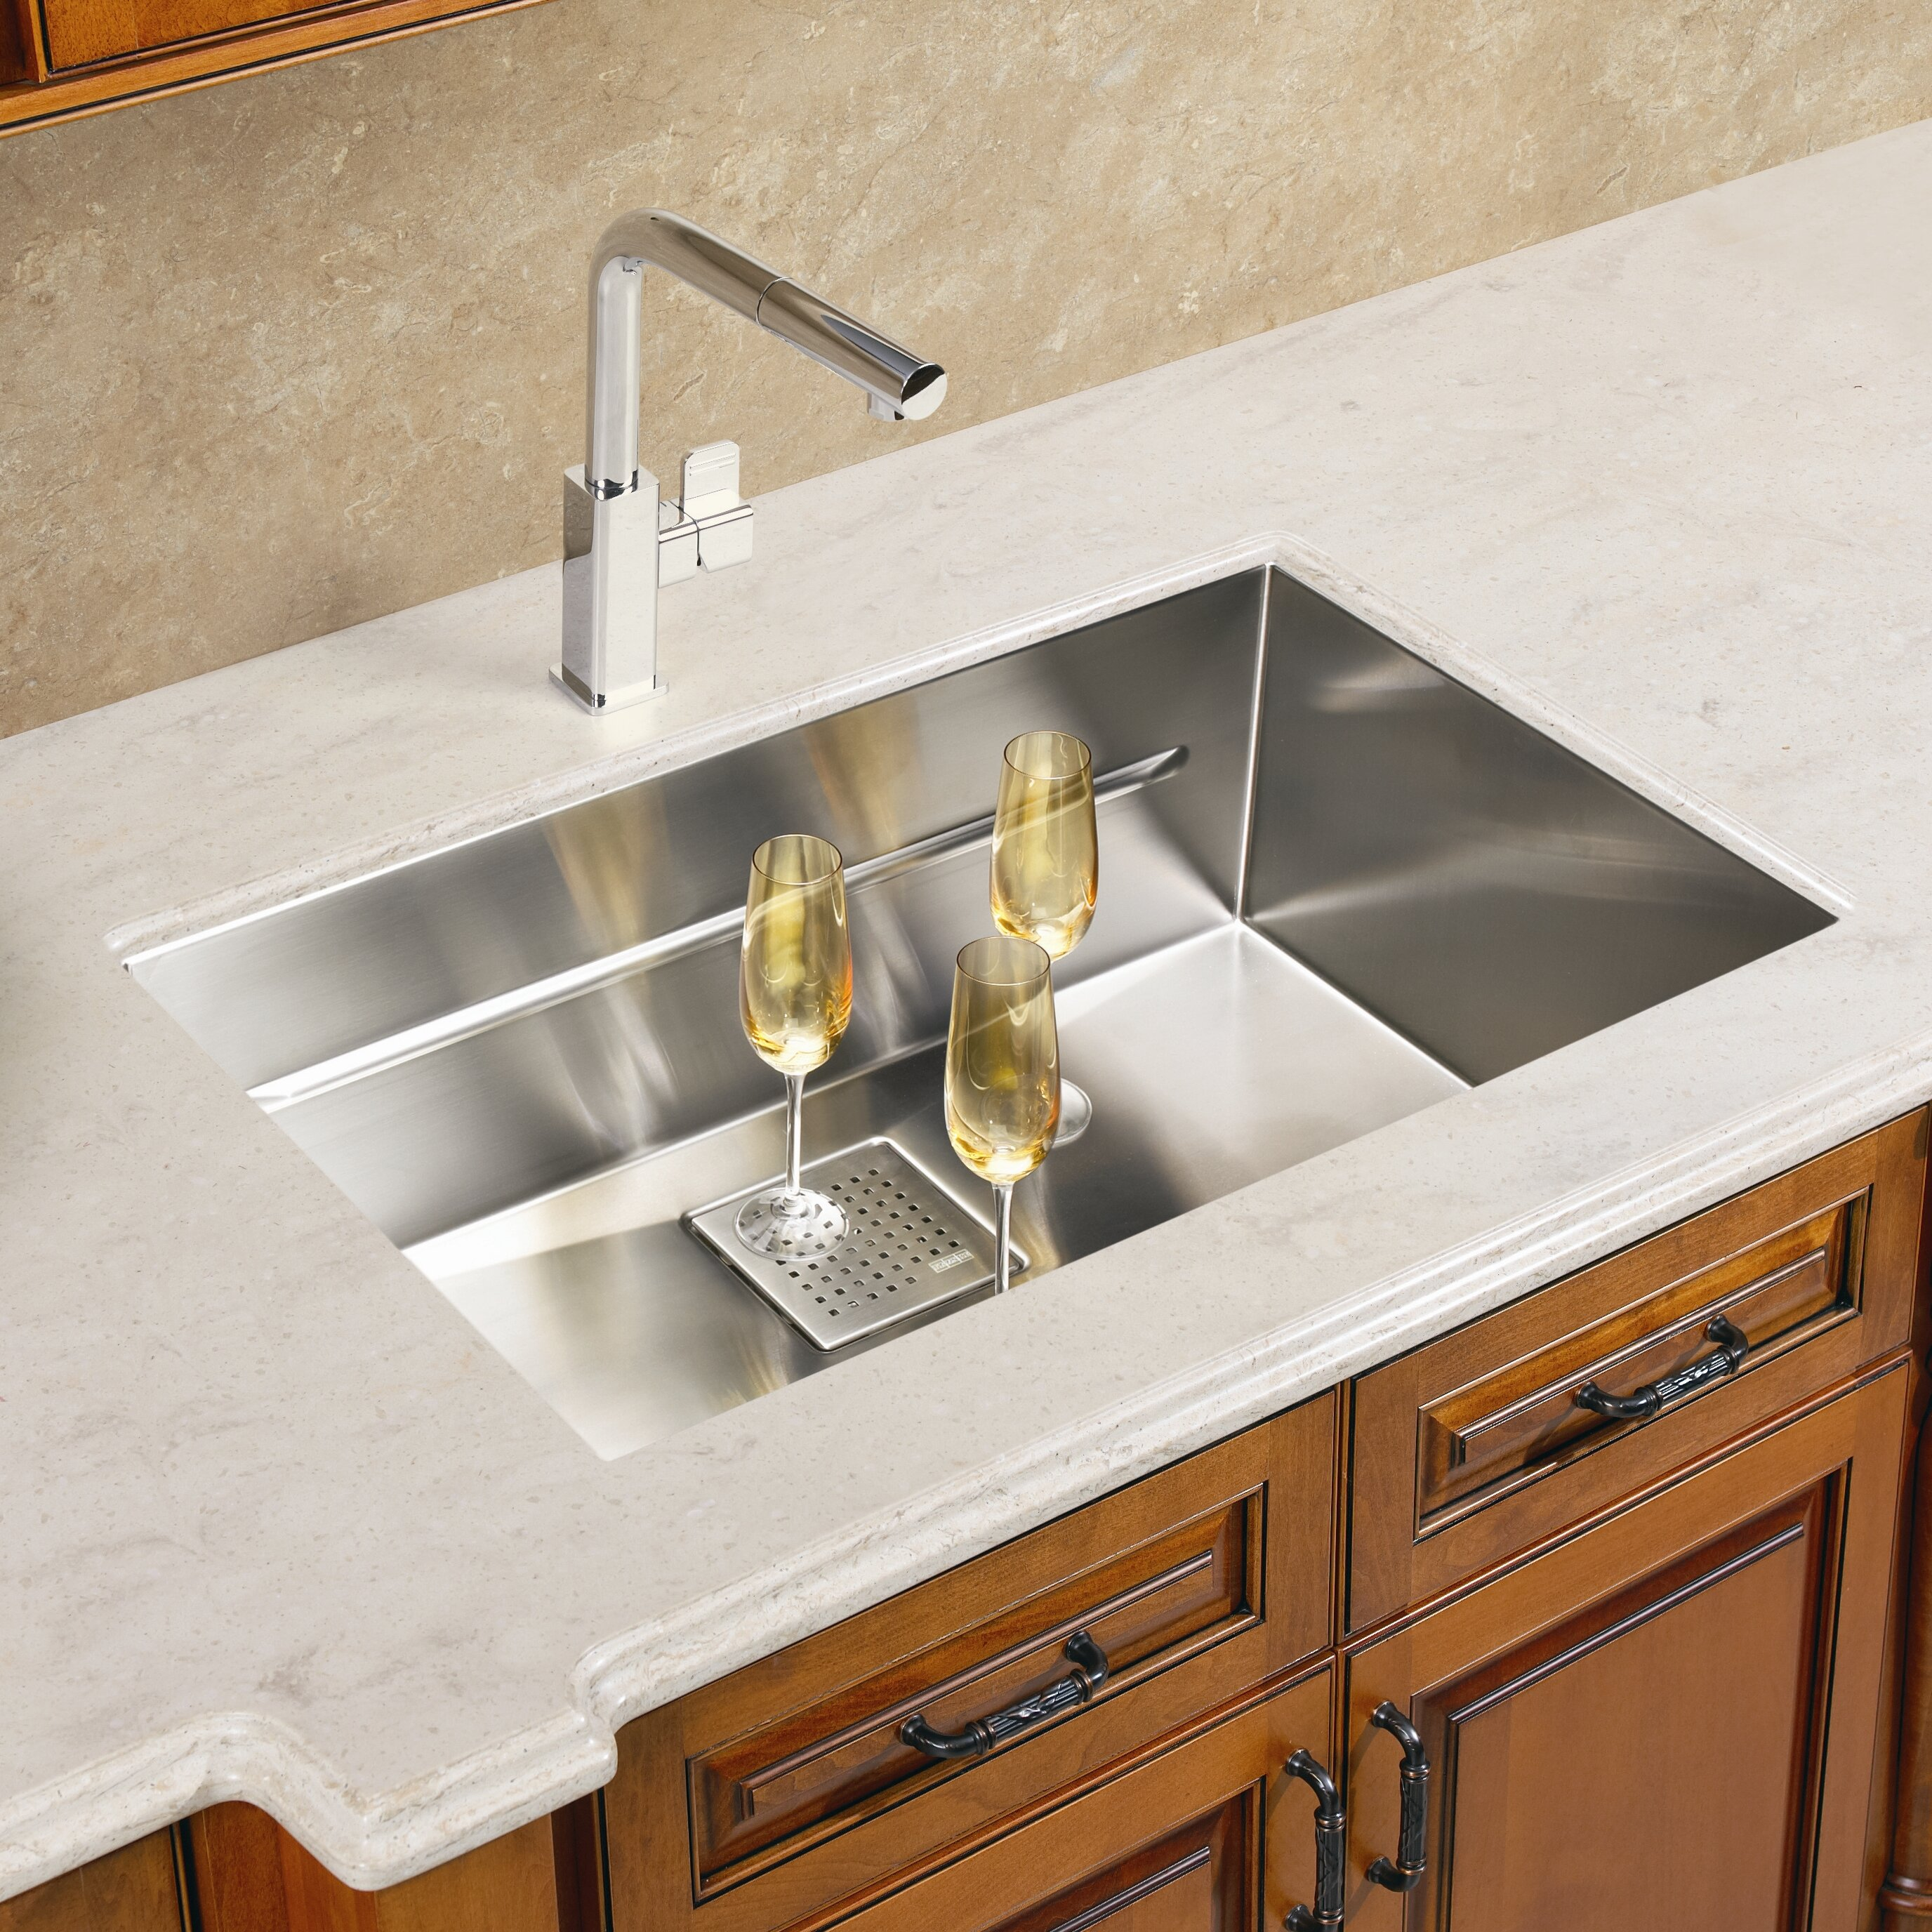 Franke Single Bowl Kitchen Sink : Franke Peak 17.75